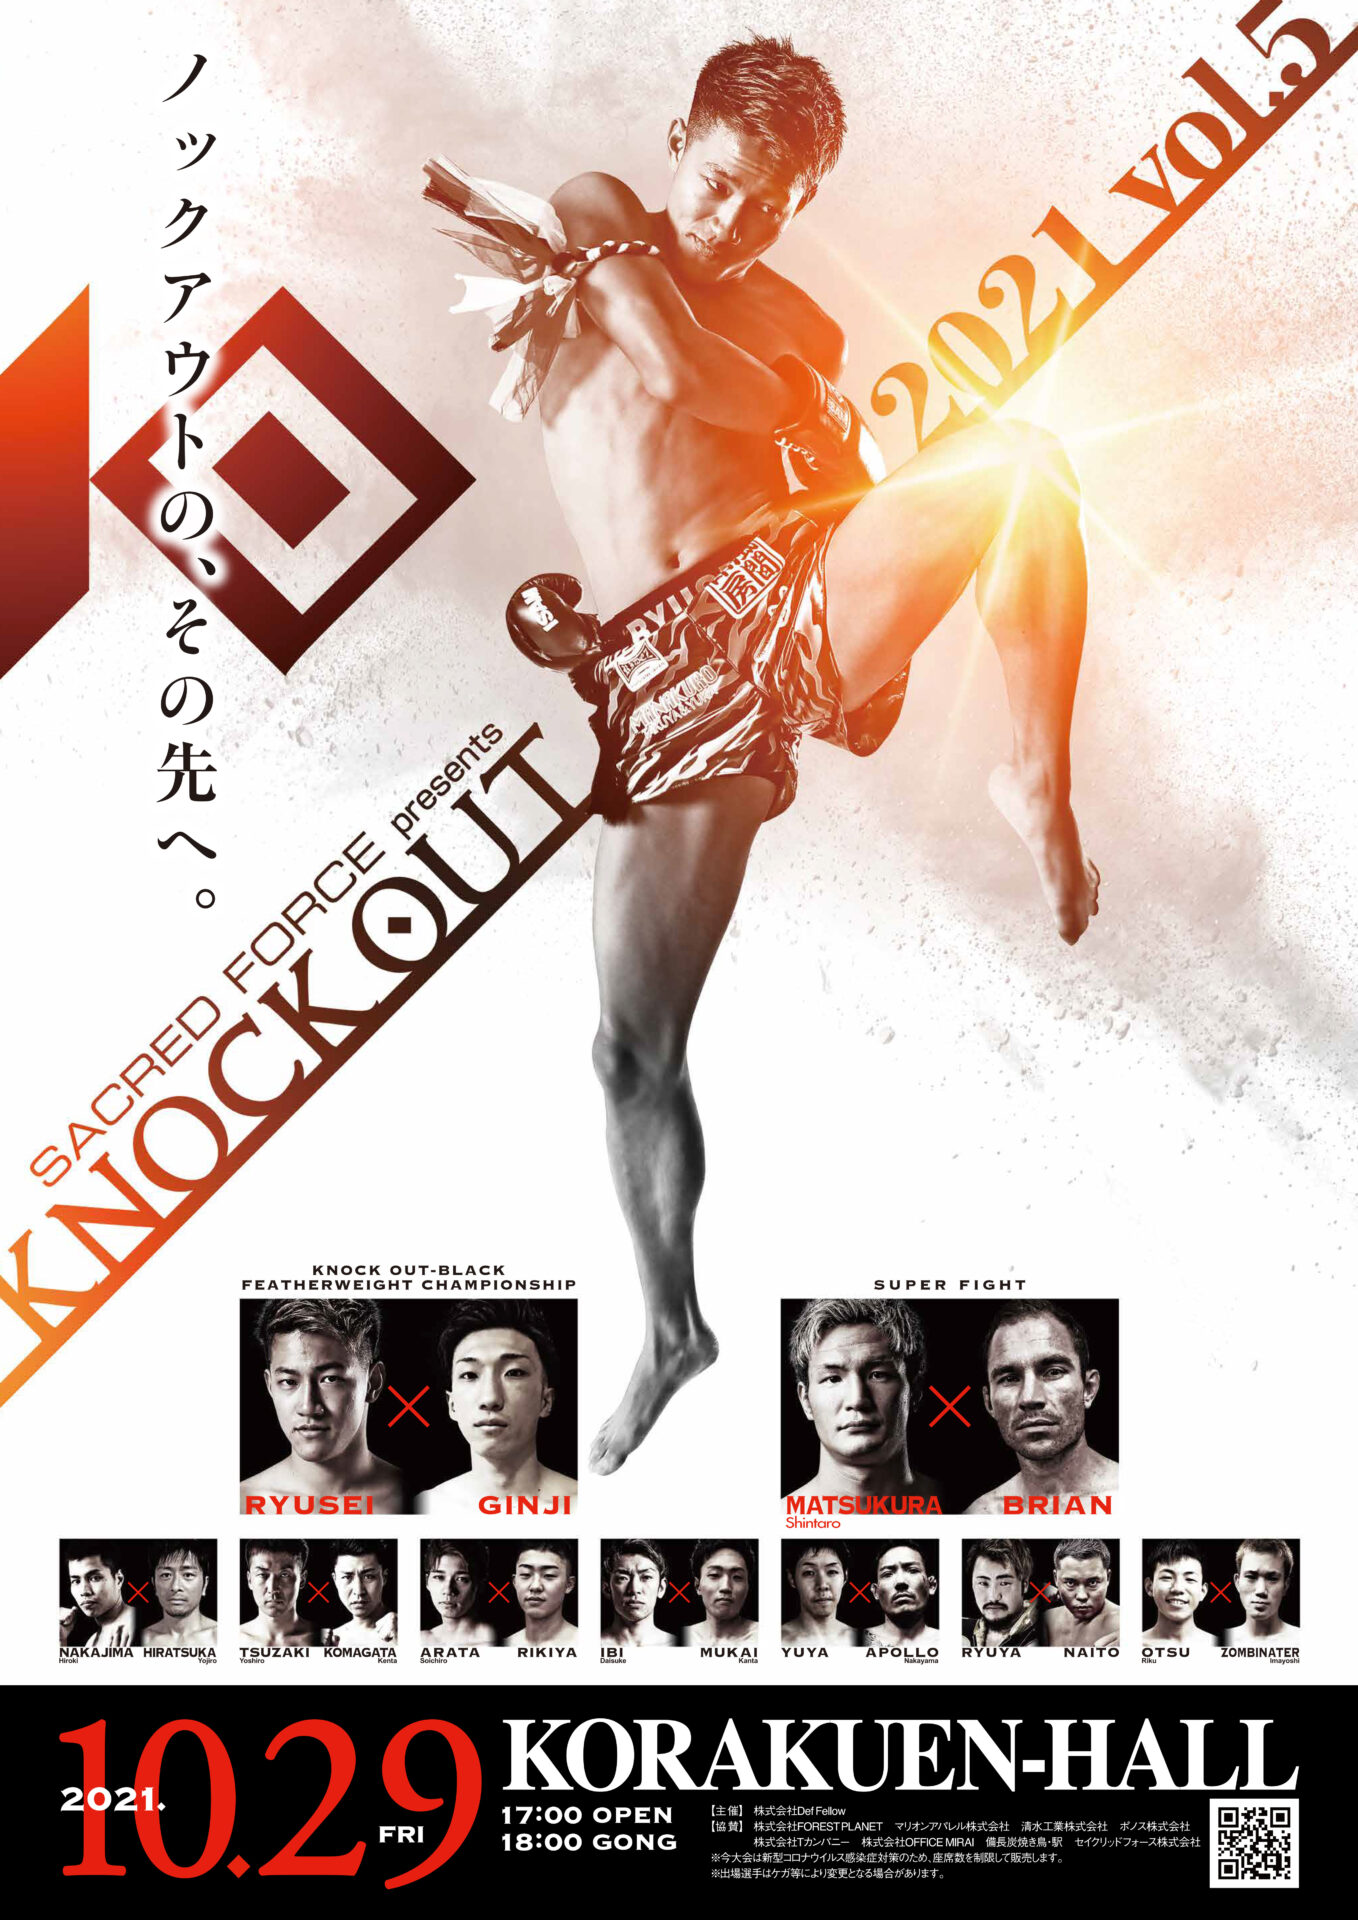 4048SACRED FORCE presents KNOCK OUT 2021 vol.5